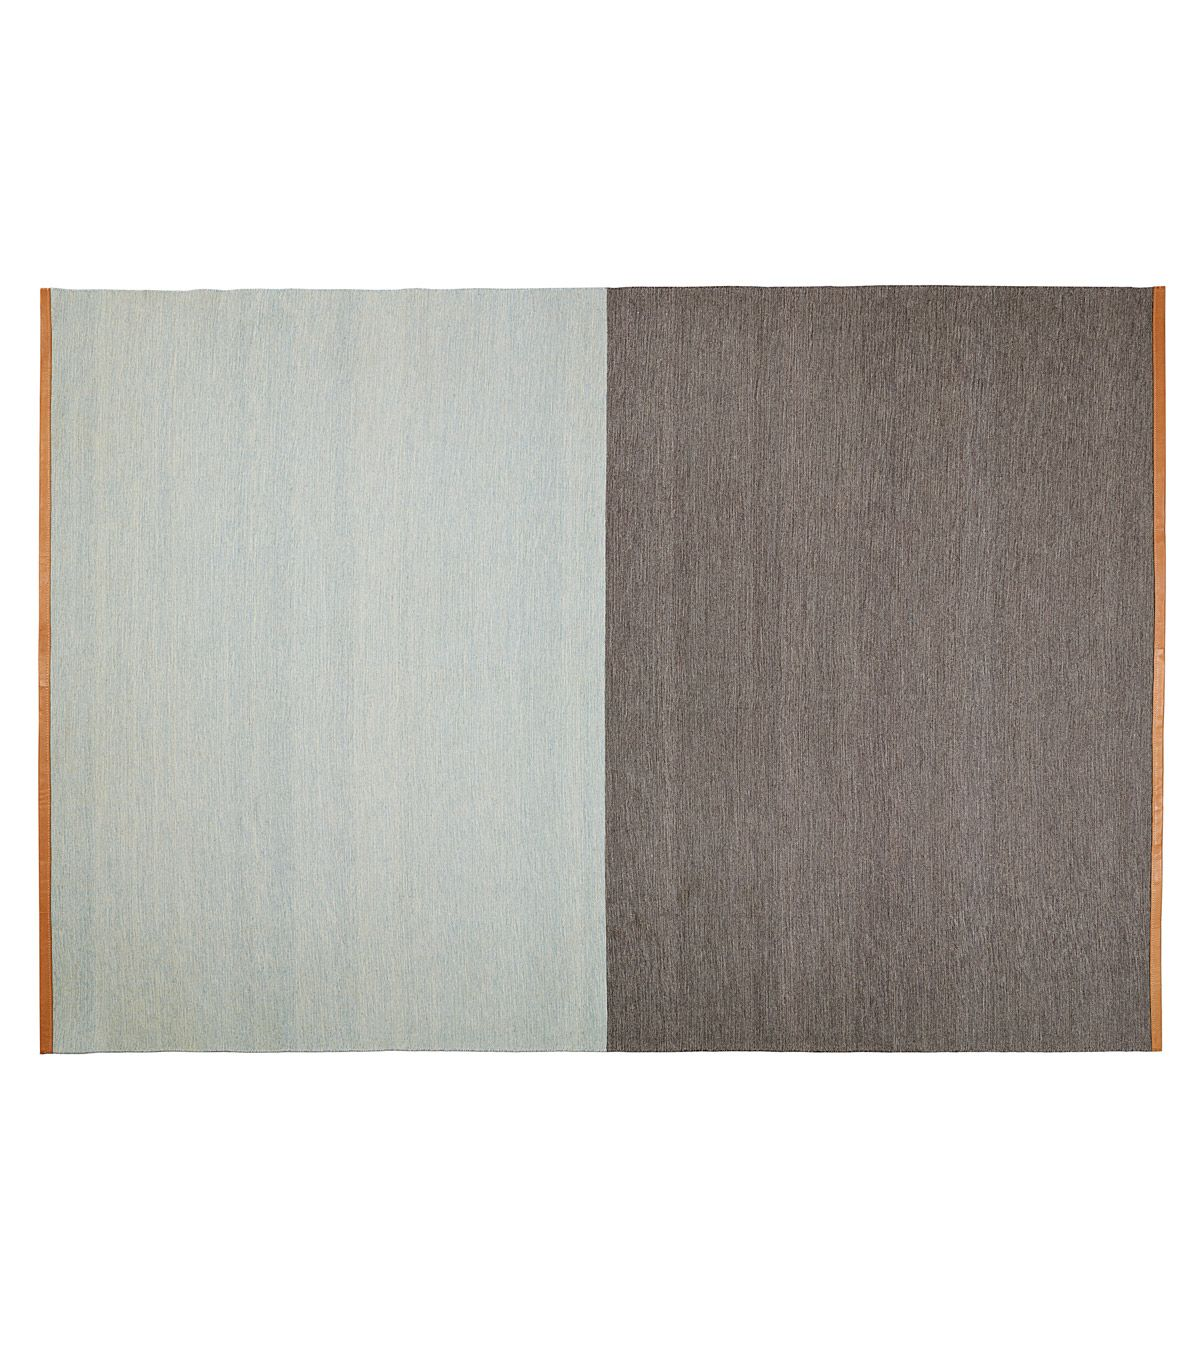 Tapis Fields bleu marron Design House Stockholm